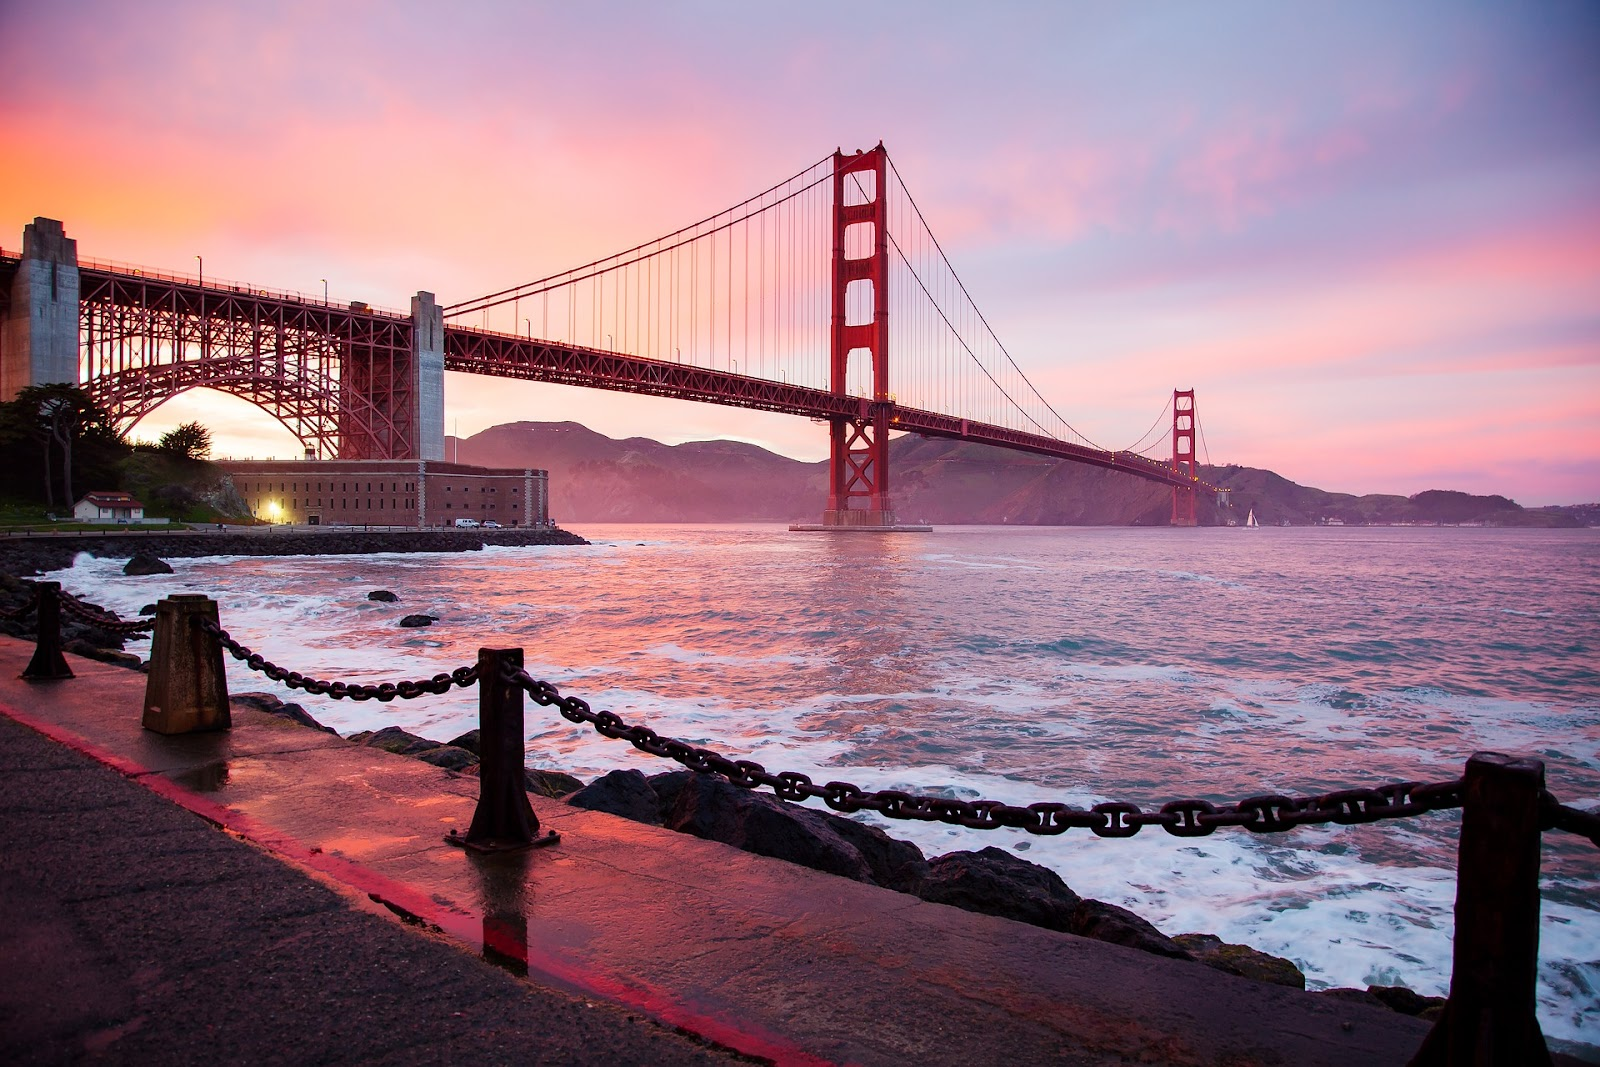 red golden gate bridge monument in san francisco with fenced path in foreground seen during sunset